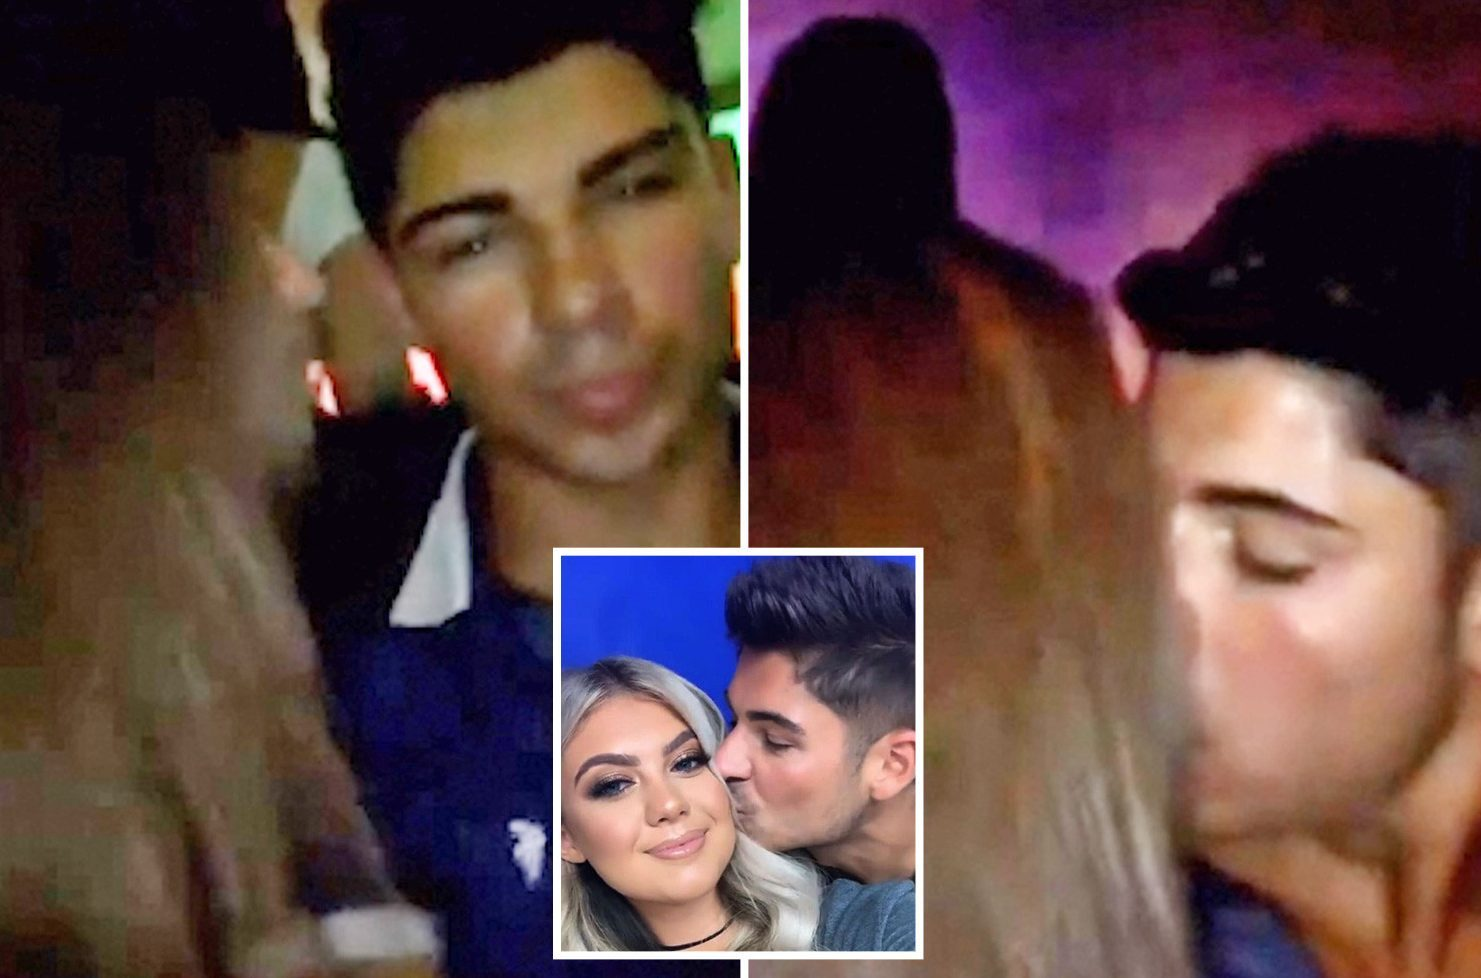 Footage of Love Island's Anton snogging girl in nightclub emerges online – but it's years old – The Sun